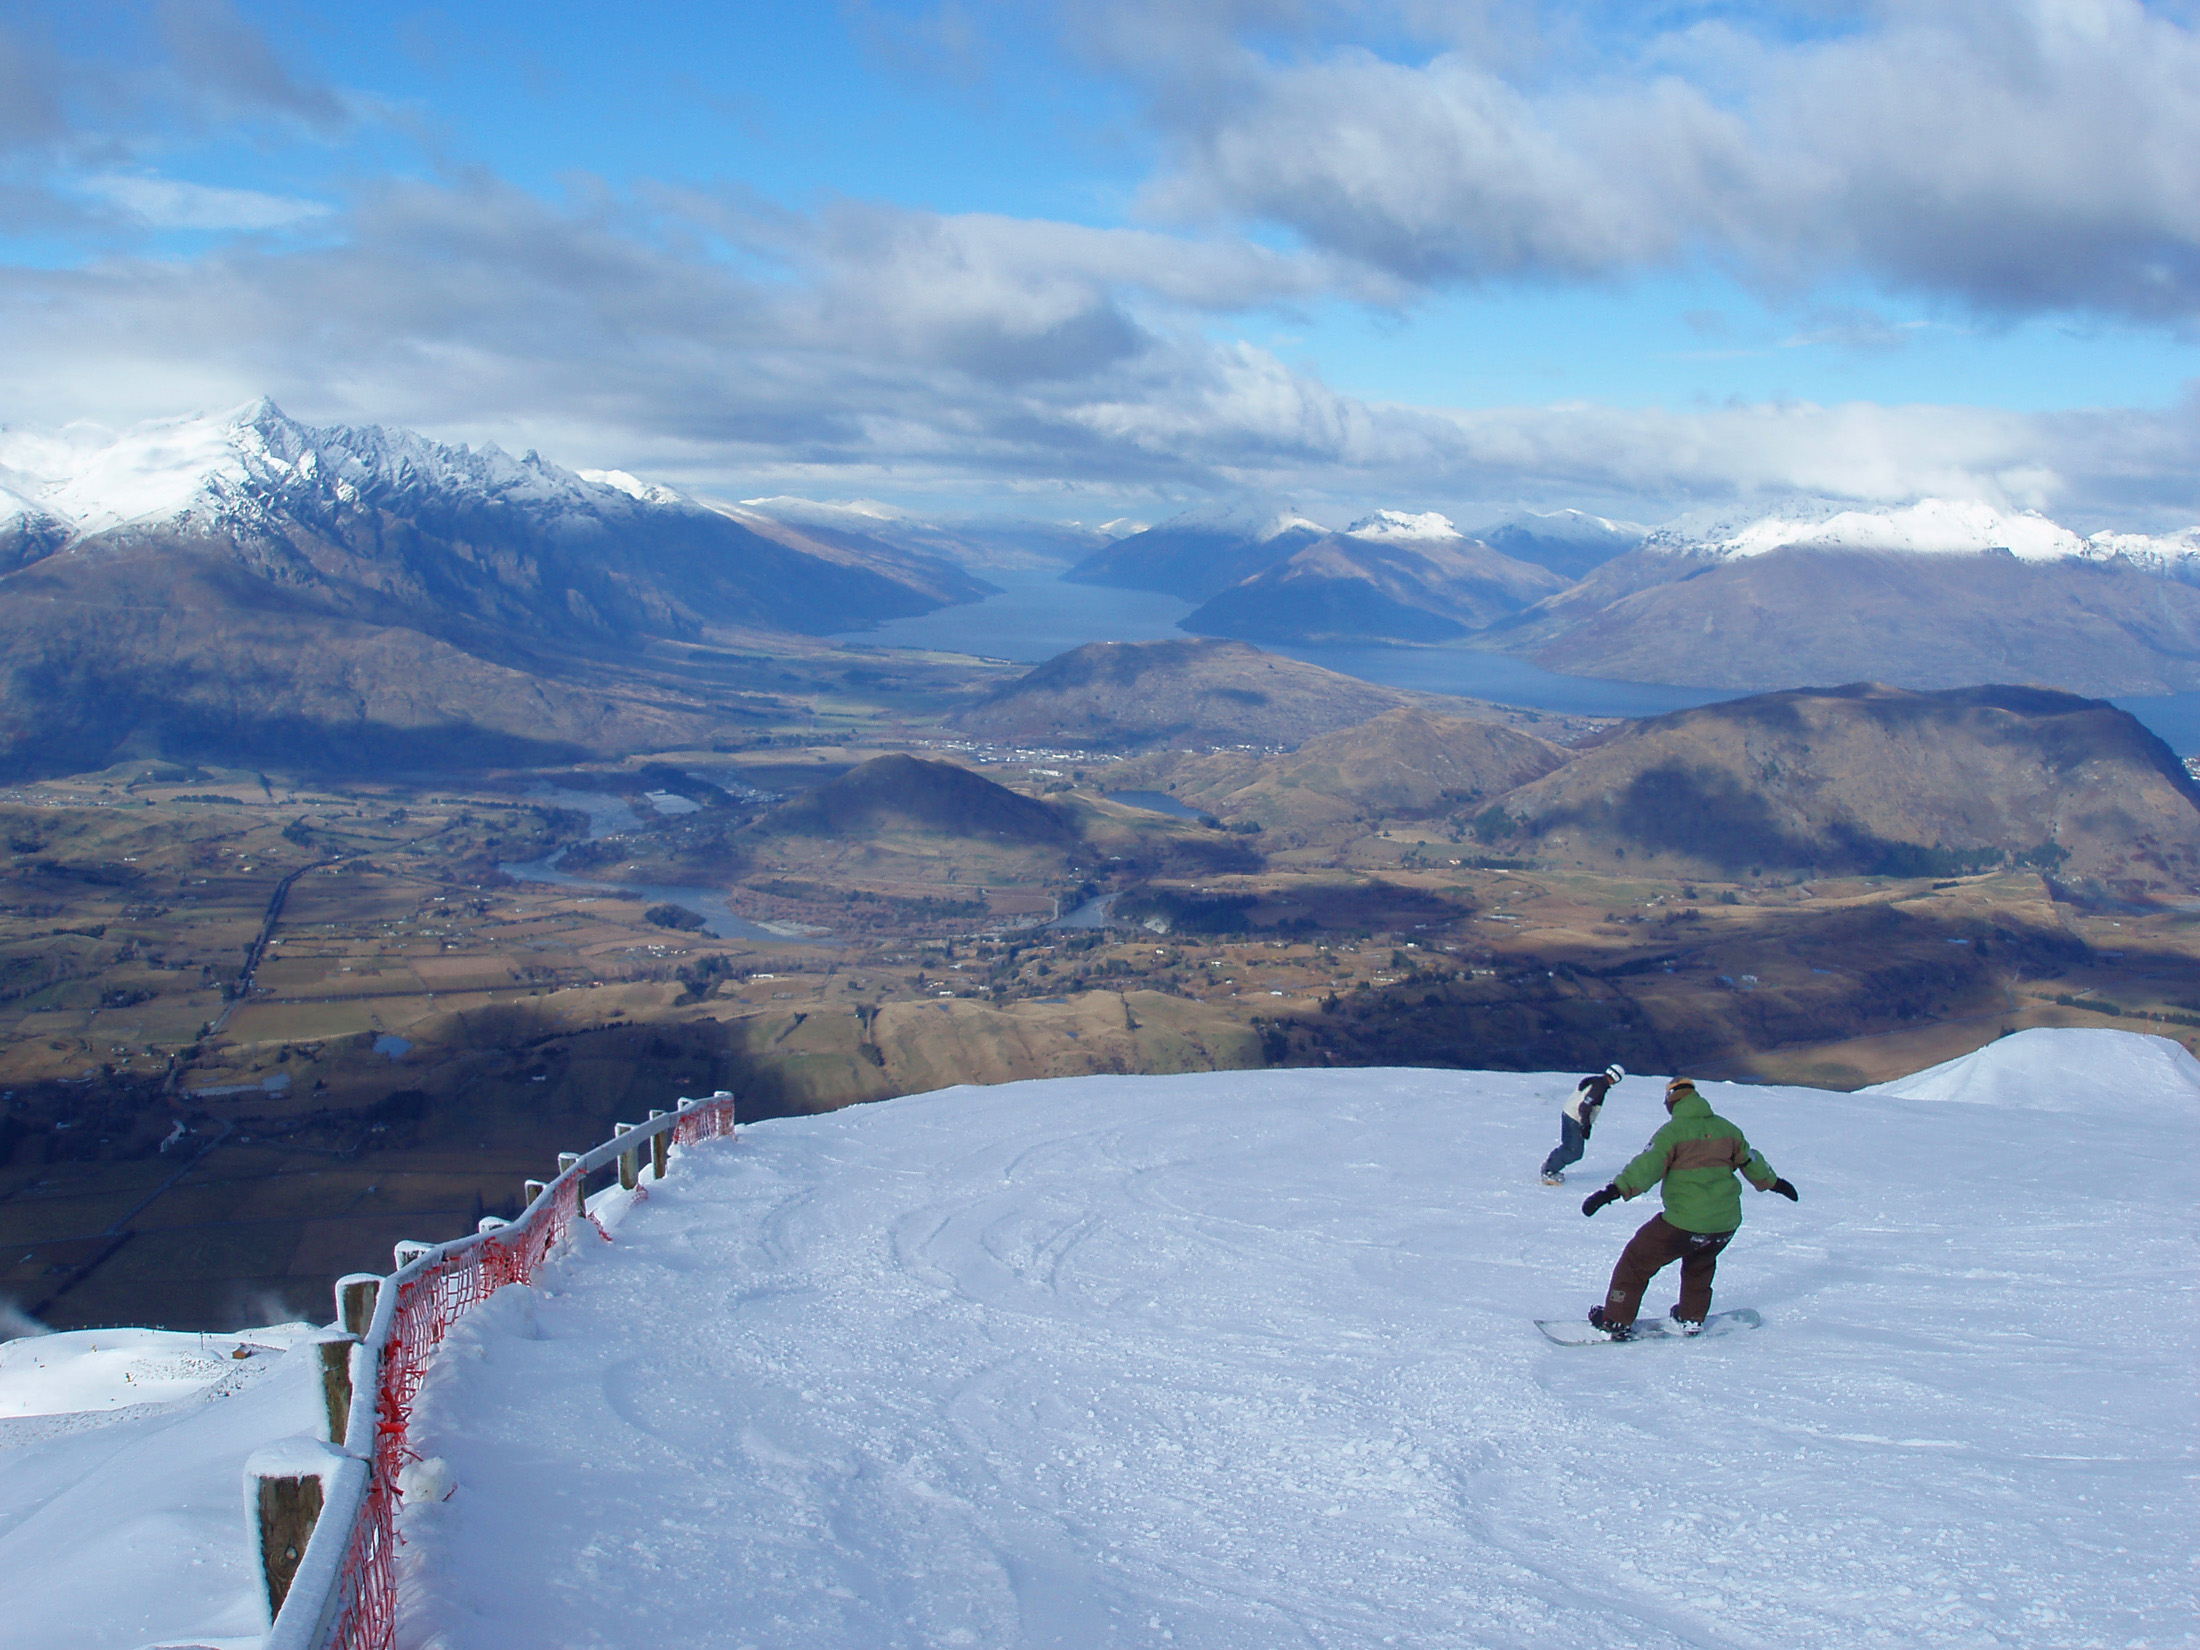 spectacular place for winter sports, snowboarder on the piste at coronet peak